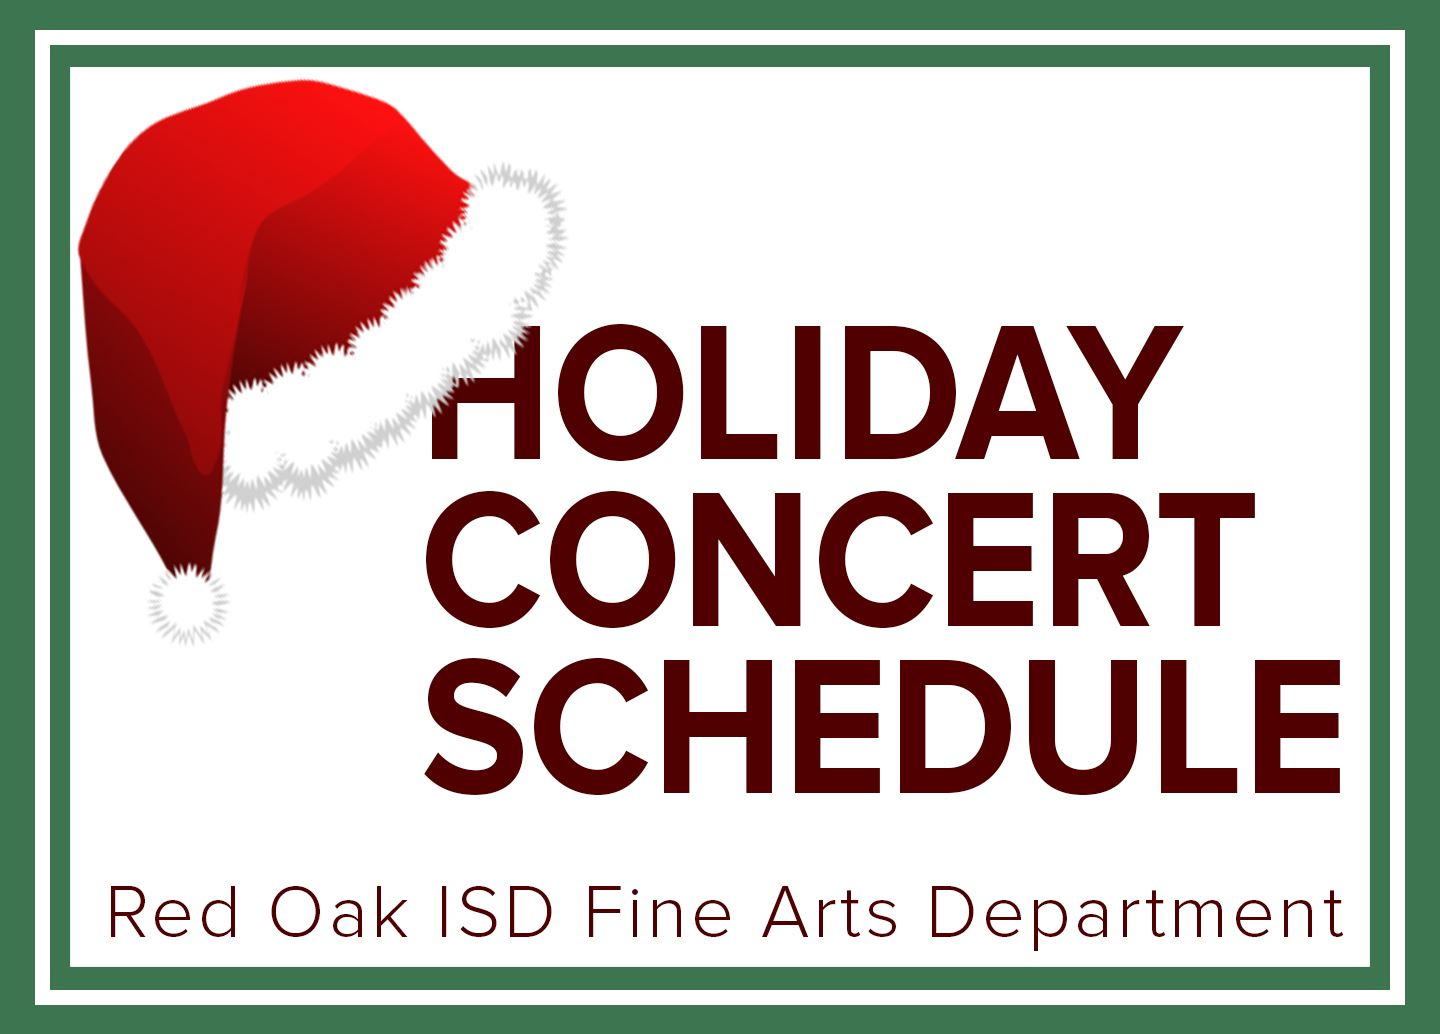 Red Oak Fine Arts Department Holiday Concert Schedule